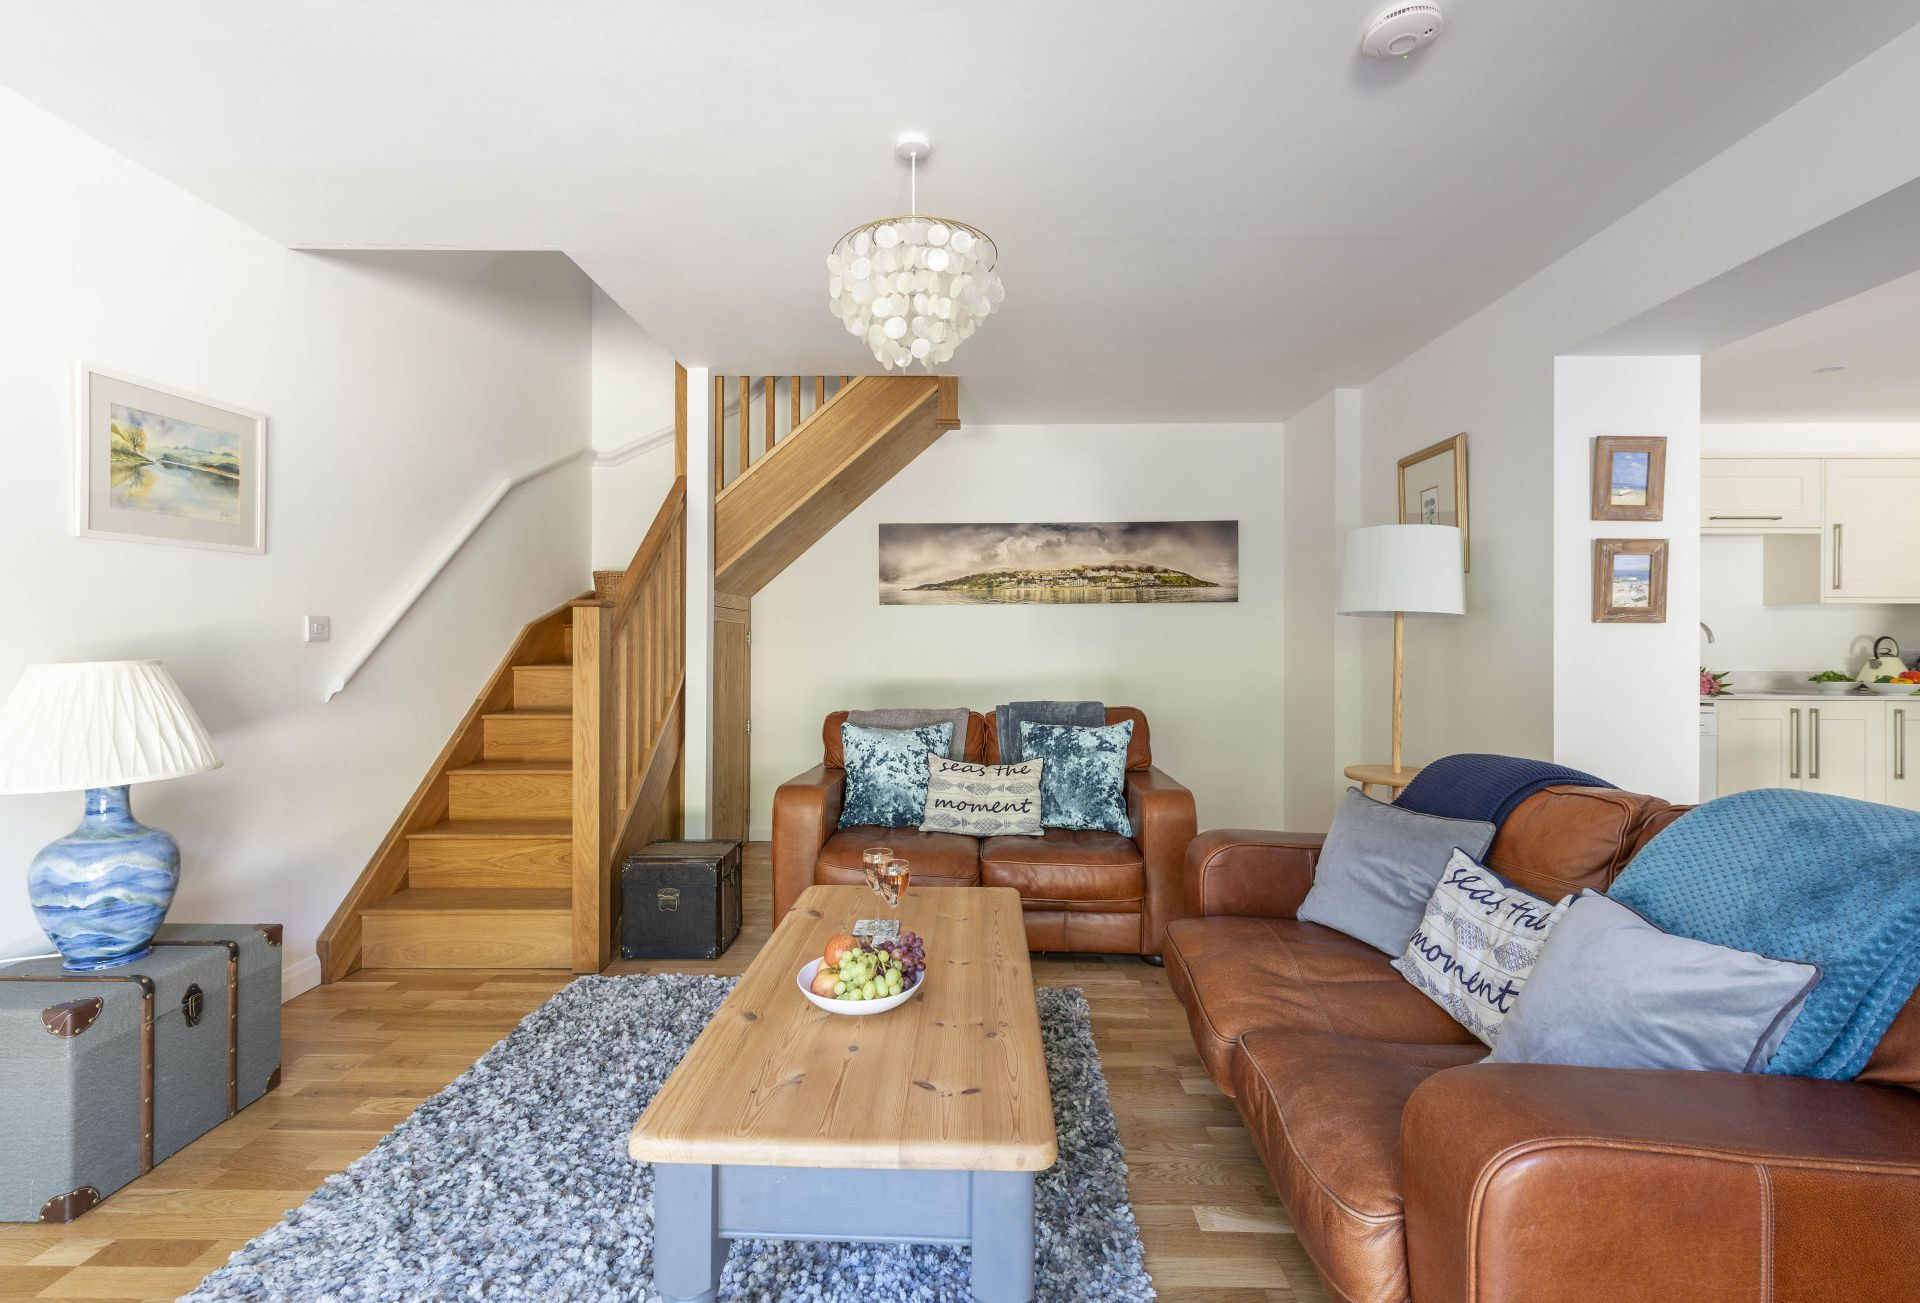 Orchard Leigh Cottage is located in Yarmouth and surrounding villages